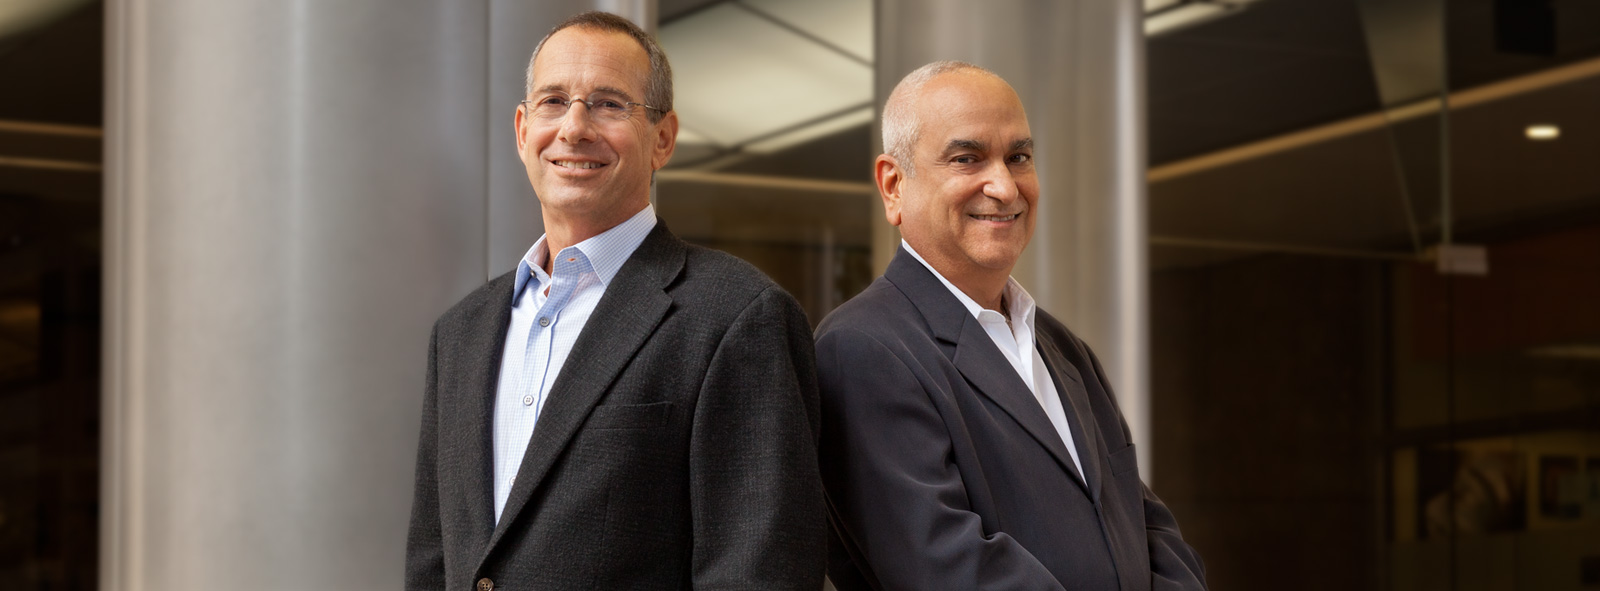 Image of First Republic Accounting Firms client(s) Mann Gelon Glodney & Augenstein, CPAs